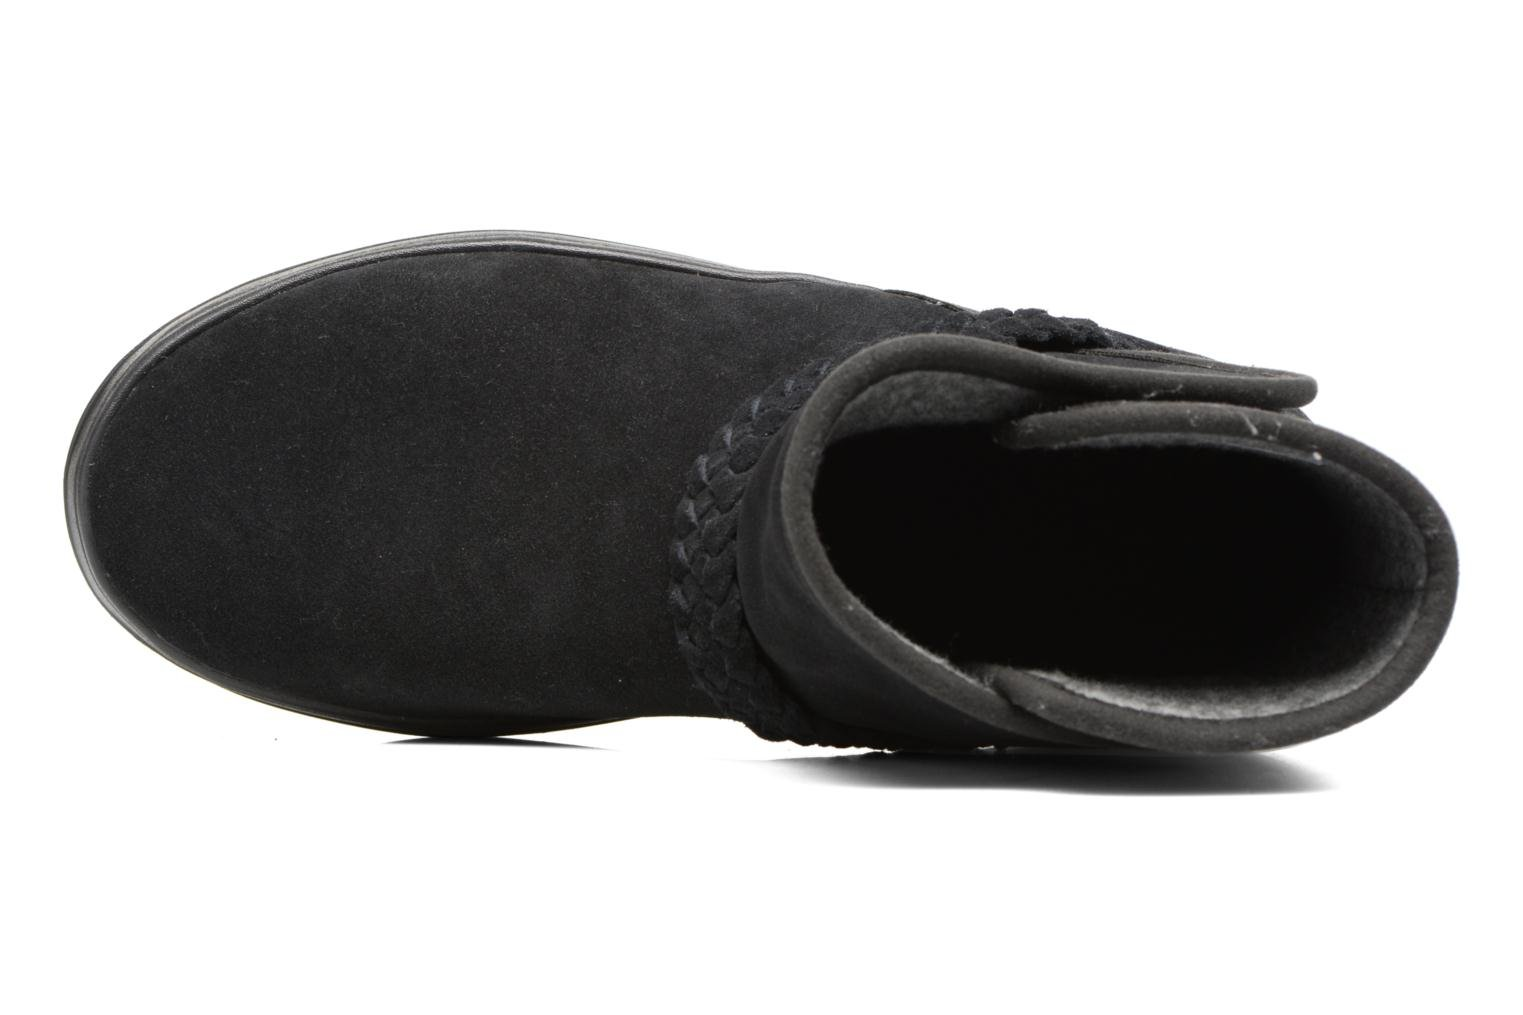 Crocs W Point Bootie Black Suede Lodge qw0A8Cqz